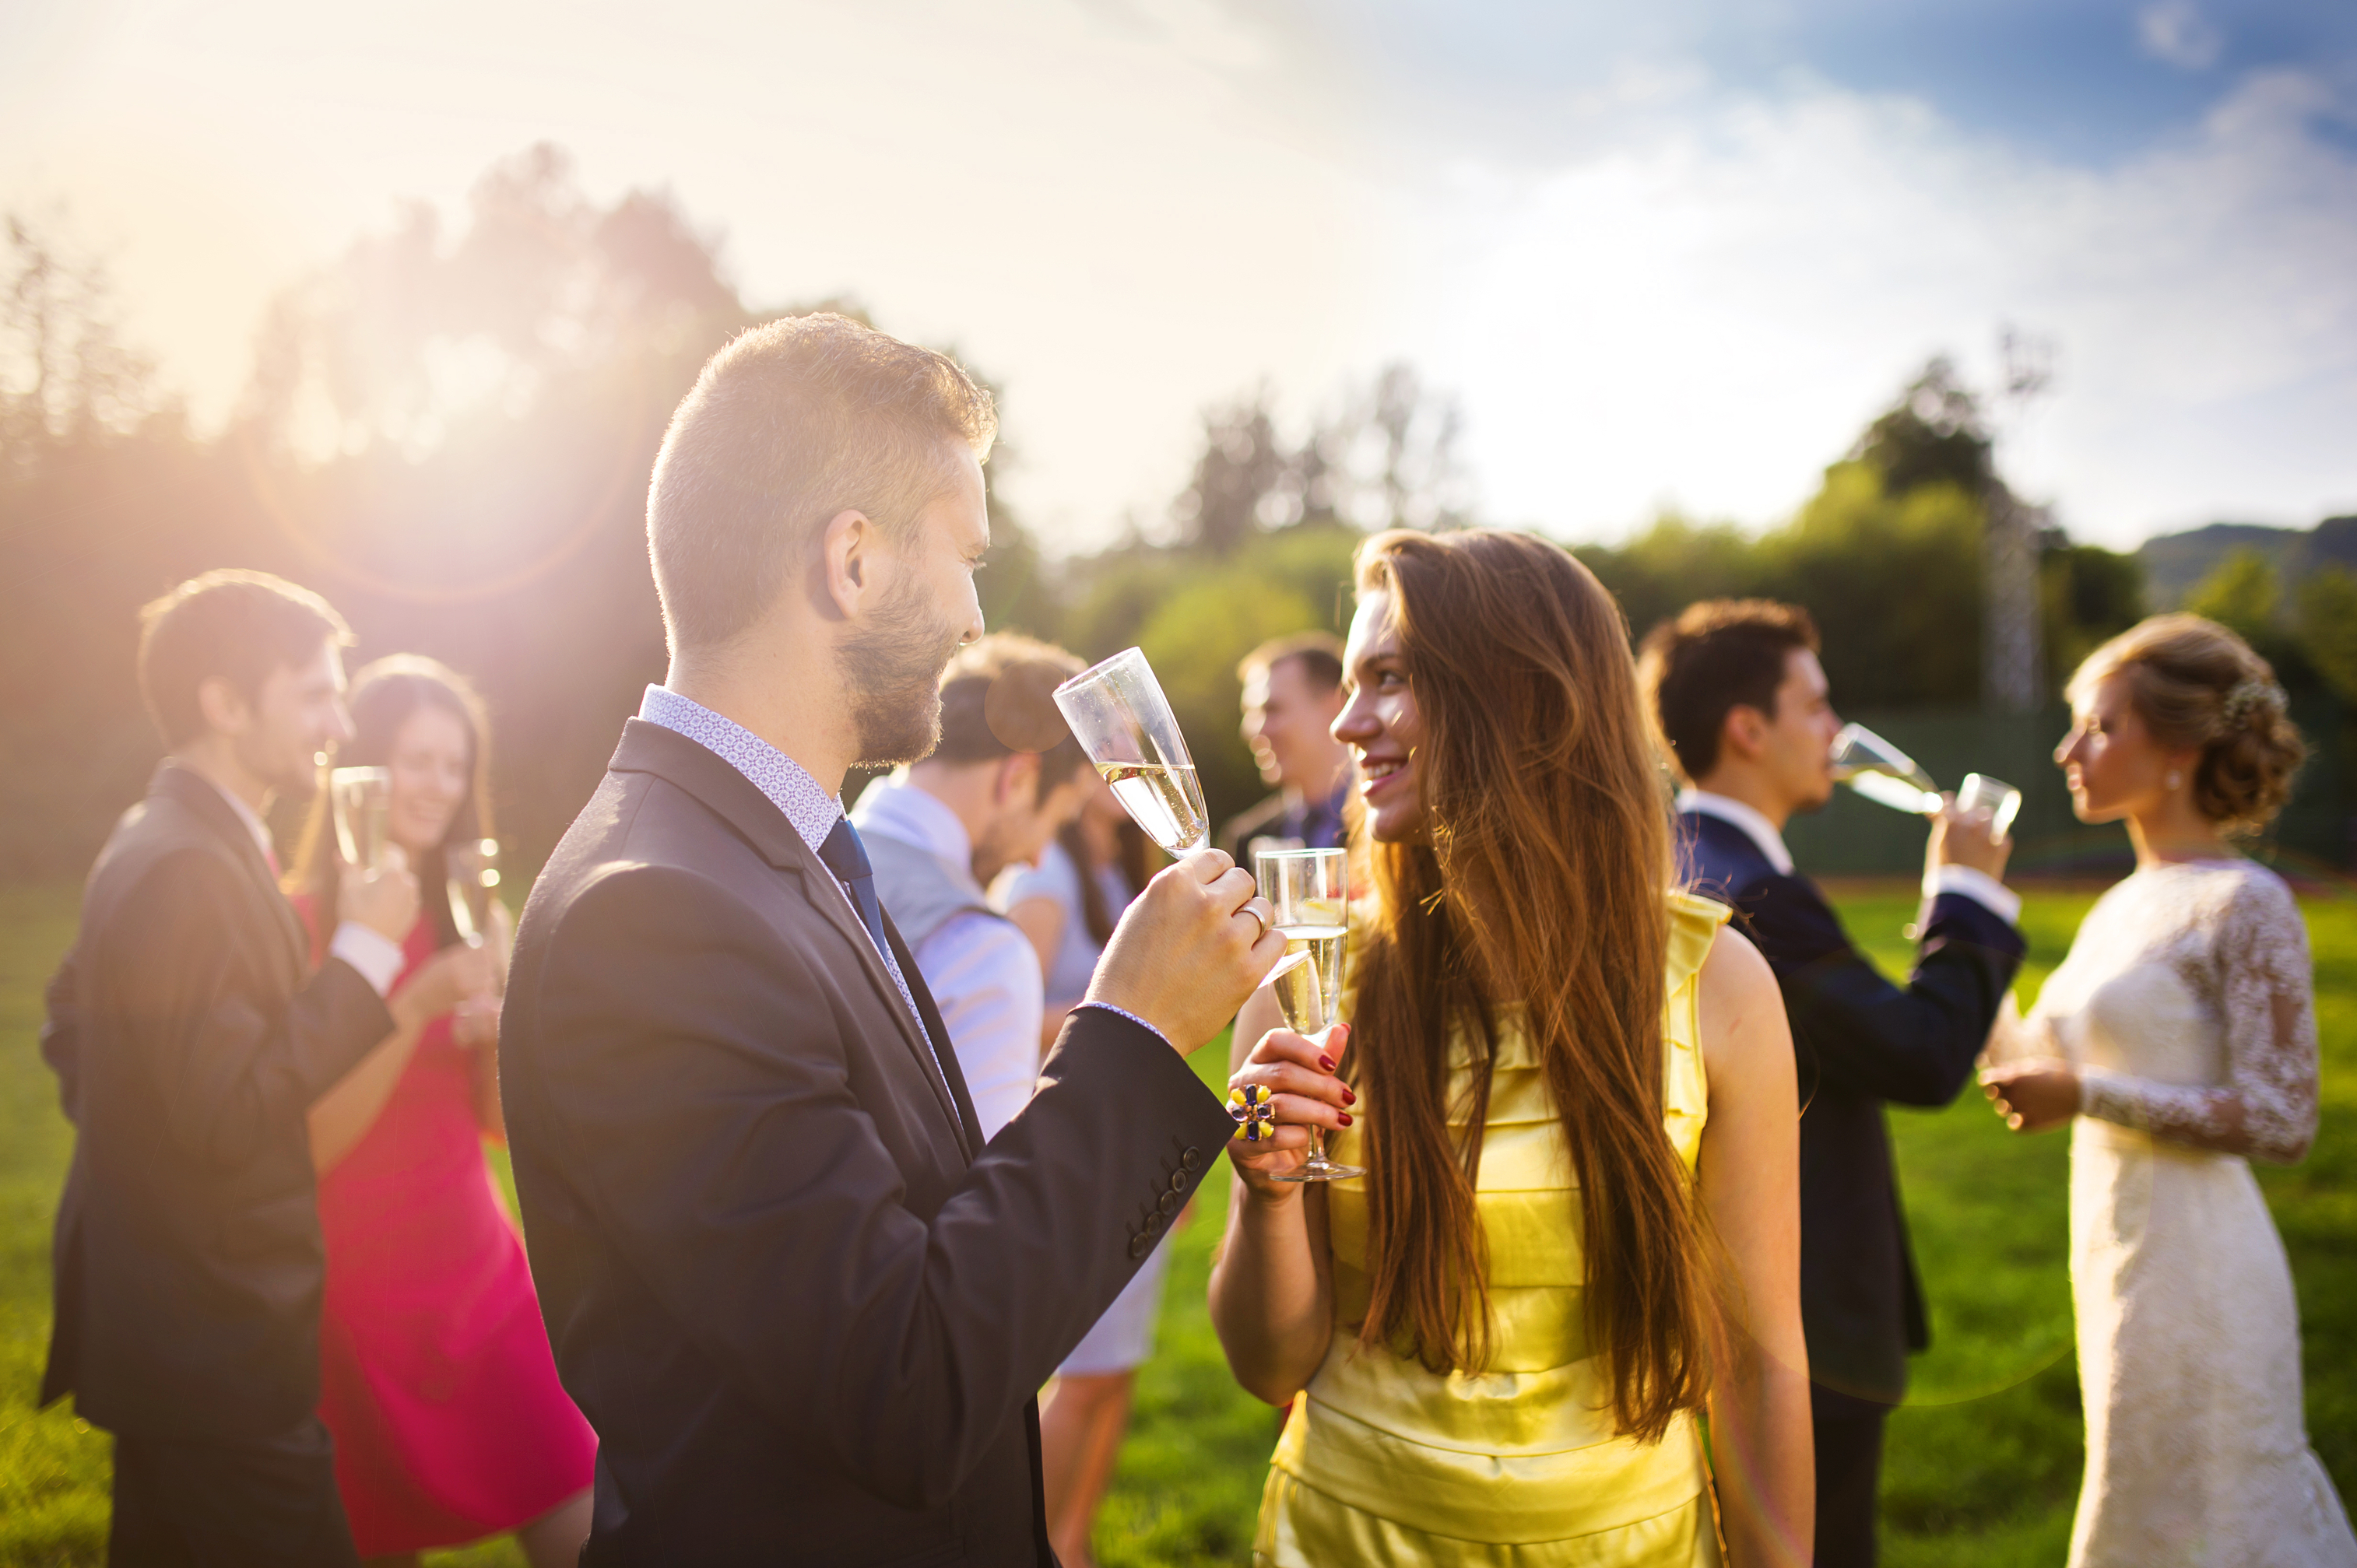 summer wedding | summer wedding reception | summer wedding reception tips | summer wedding tips | outdoor wedding | wedding tips